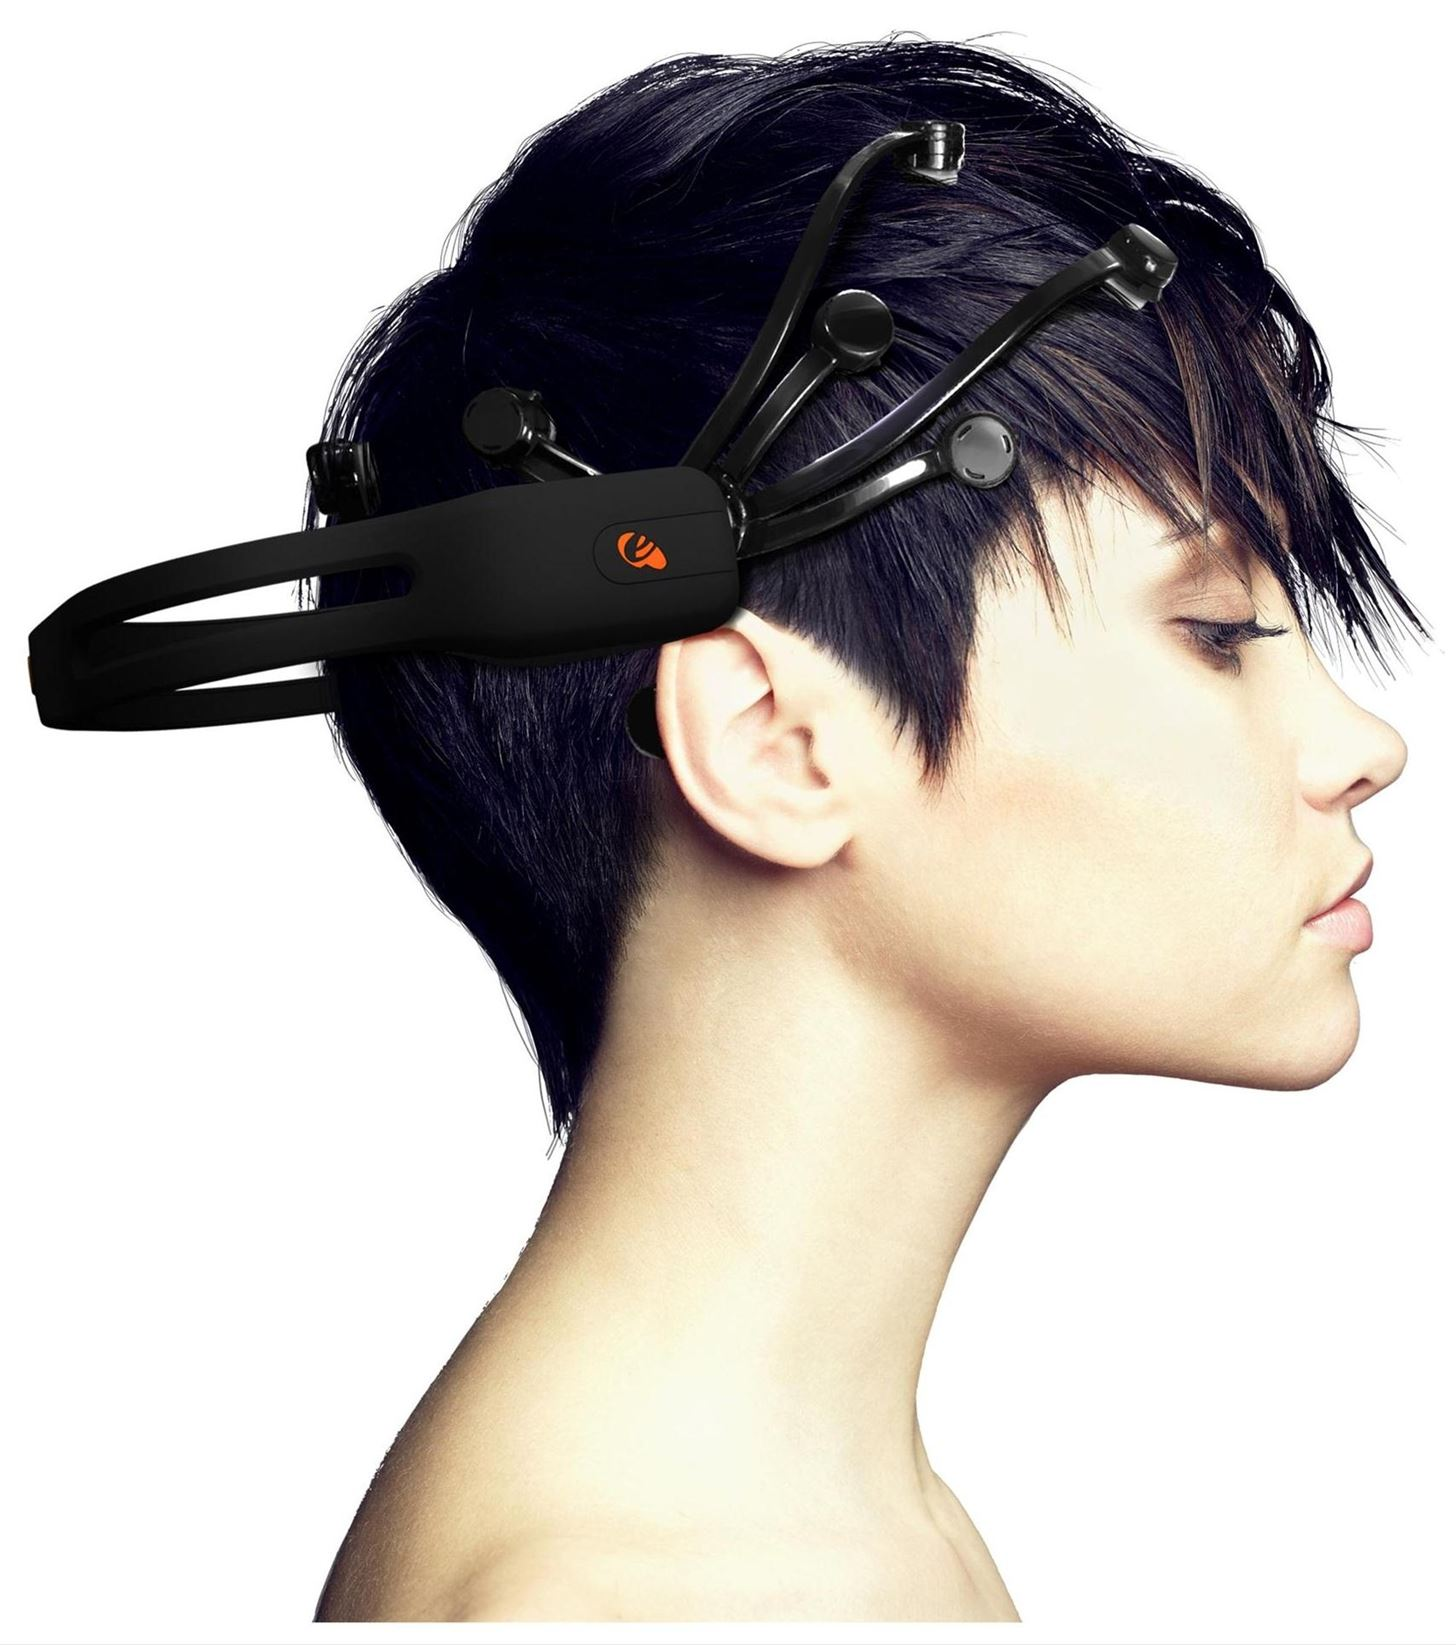 Brain Hacking and Thought-Controlled Quadcopters: The Good and Bad Future of Mind-Reading Devices